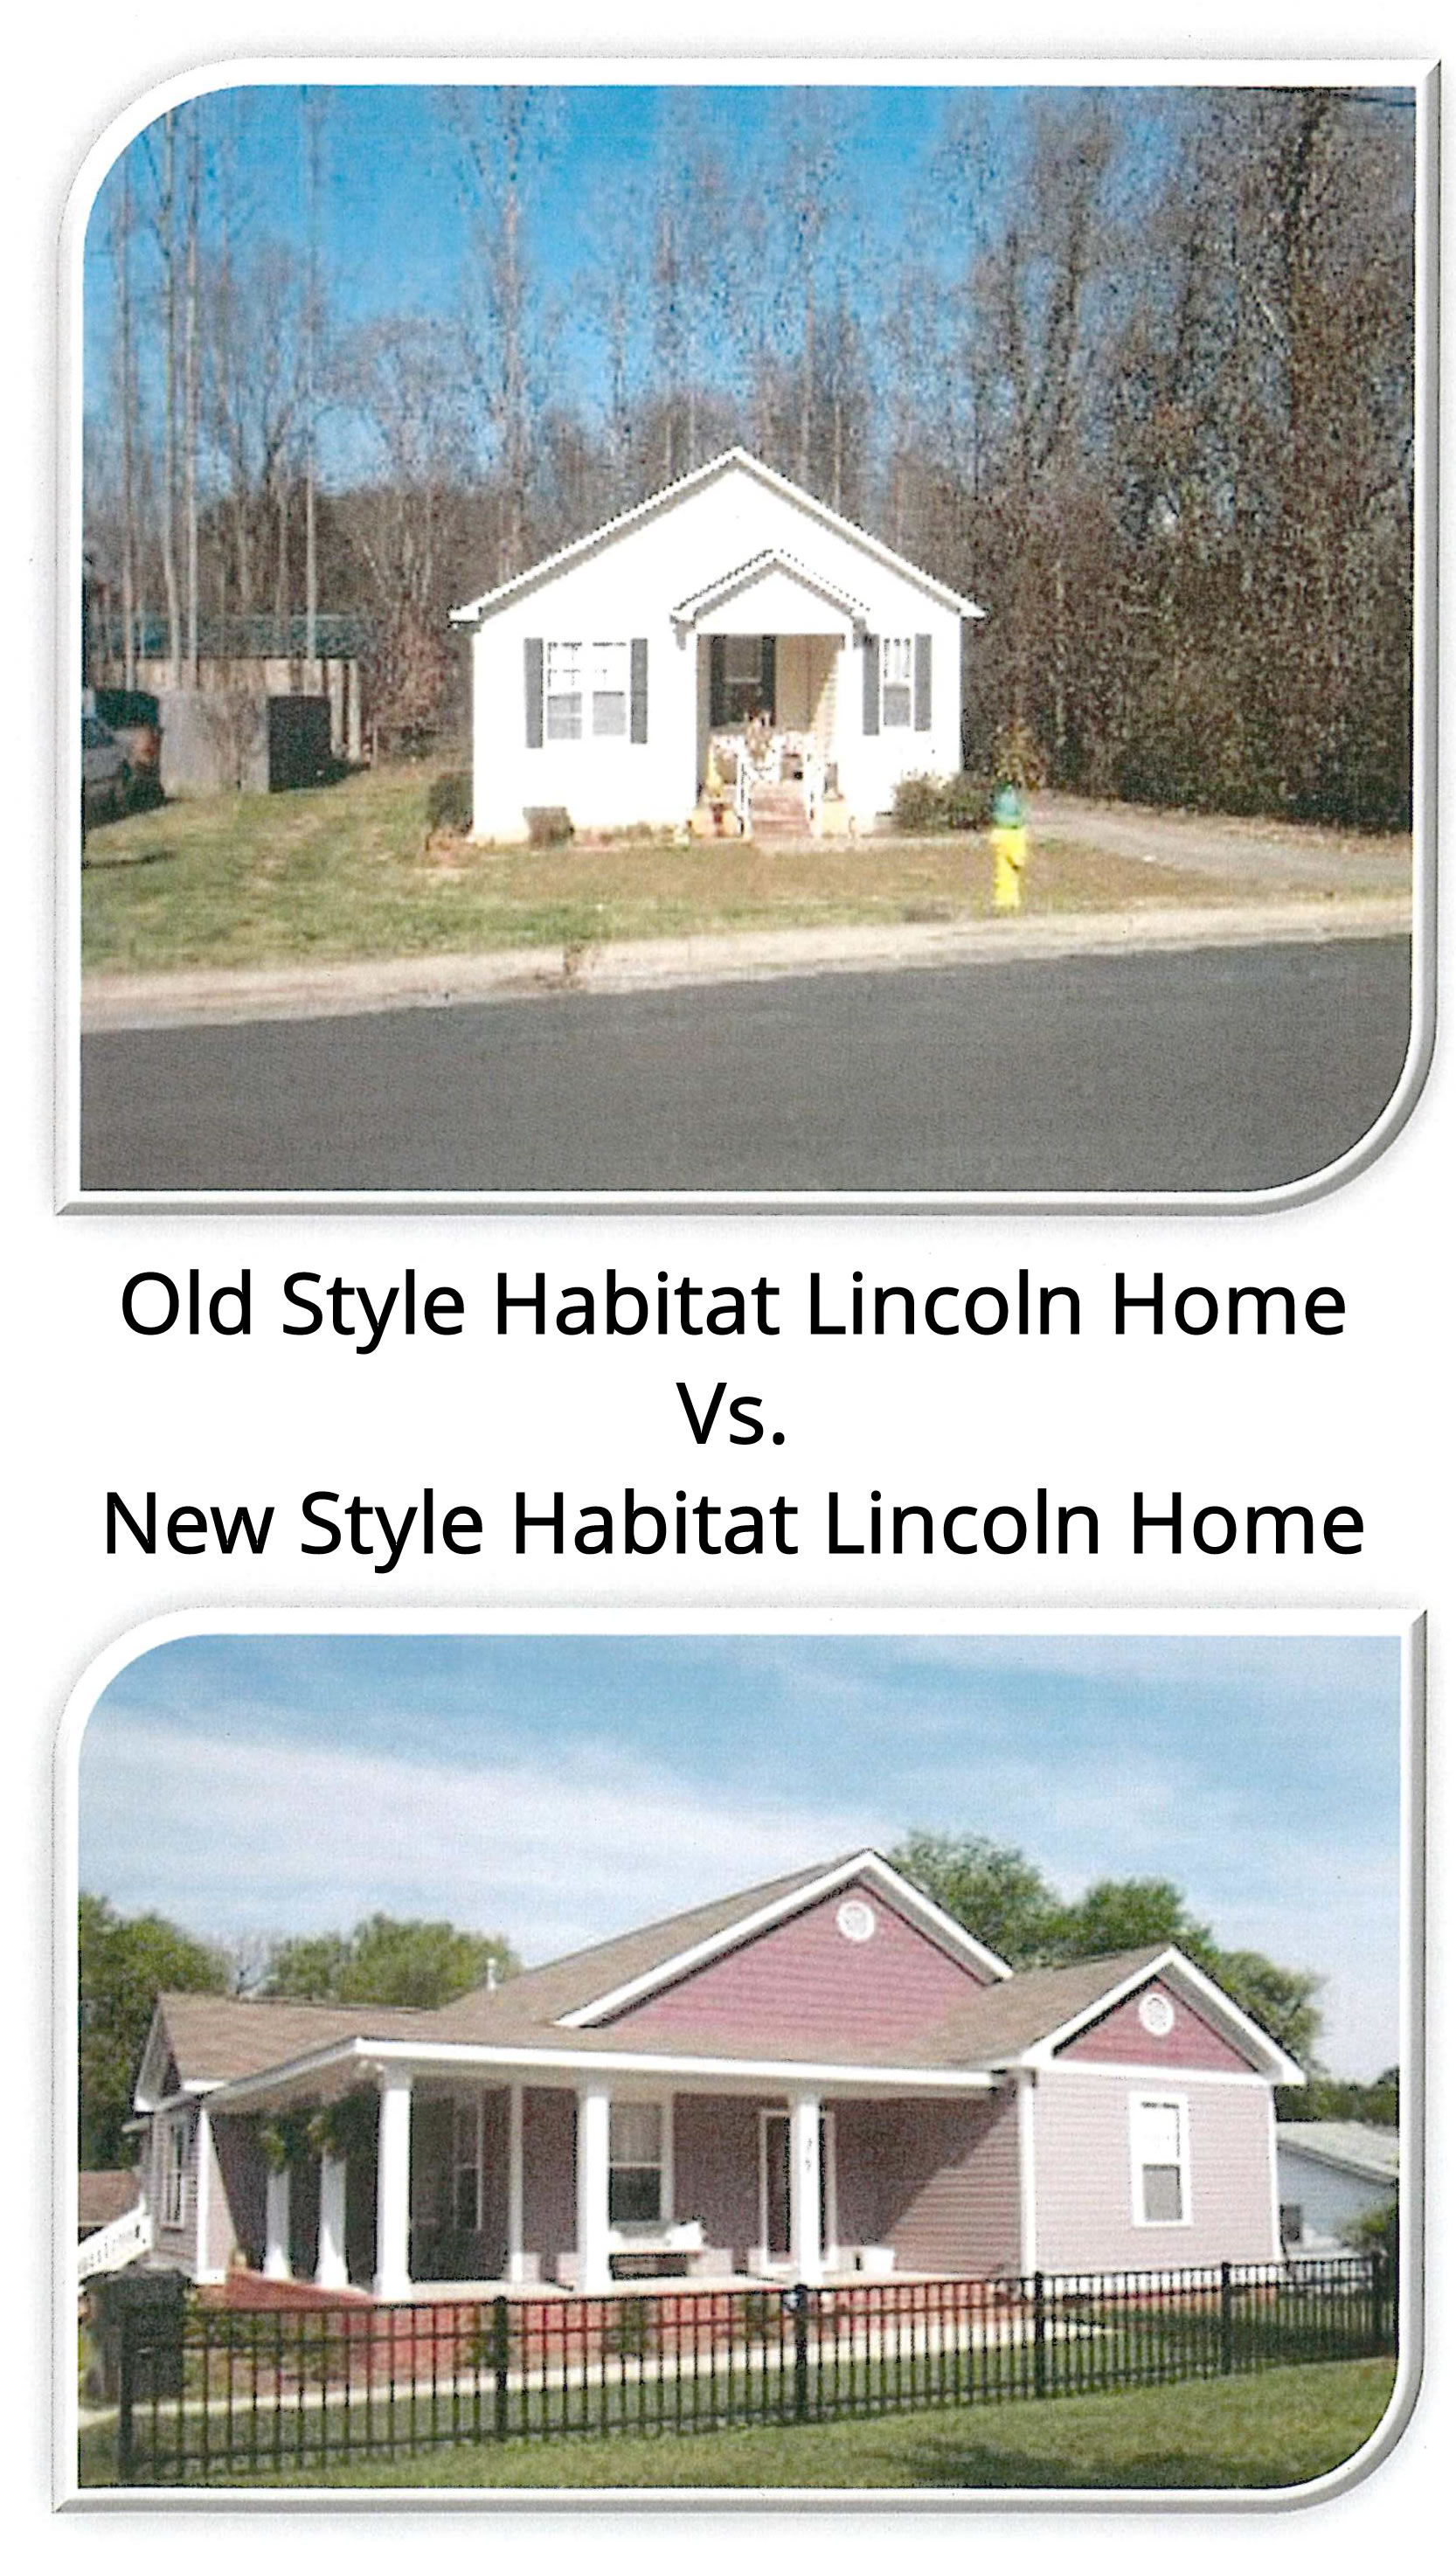 Old Habitat Lincoln Style Vs. New